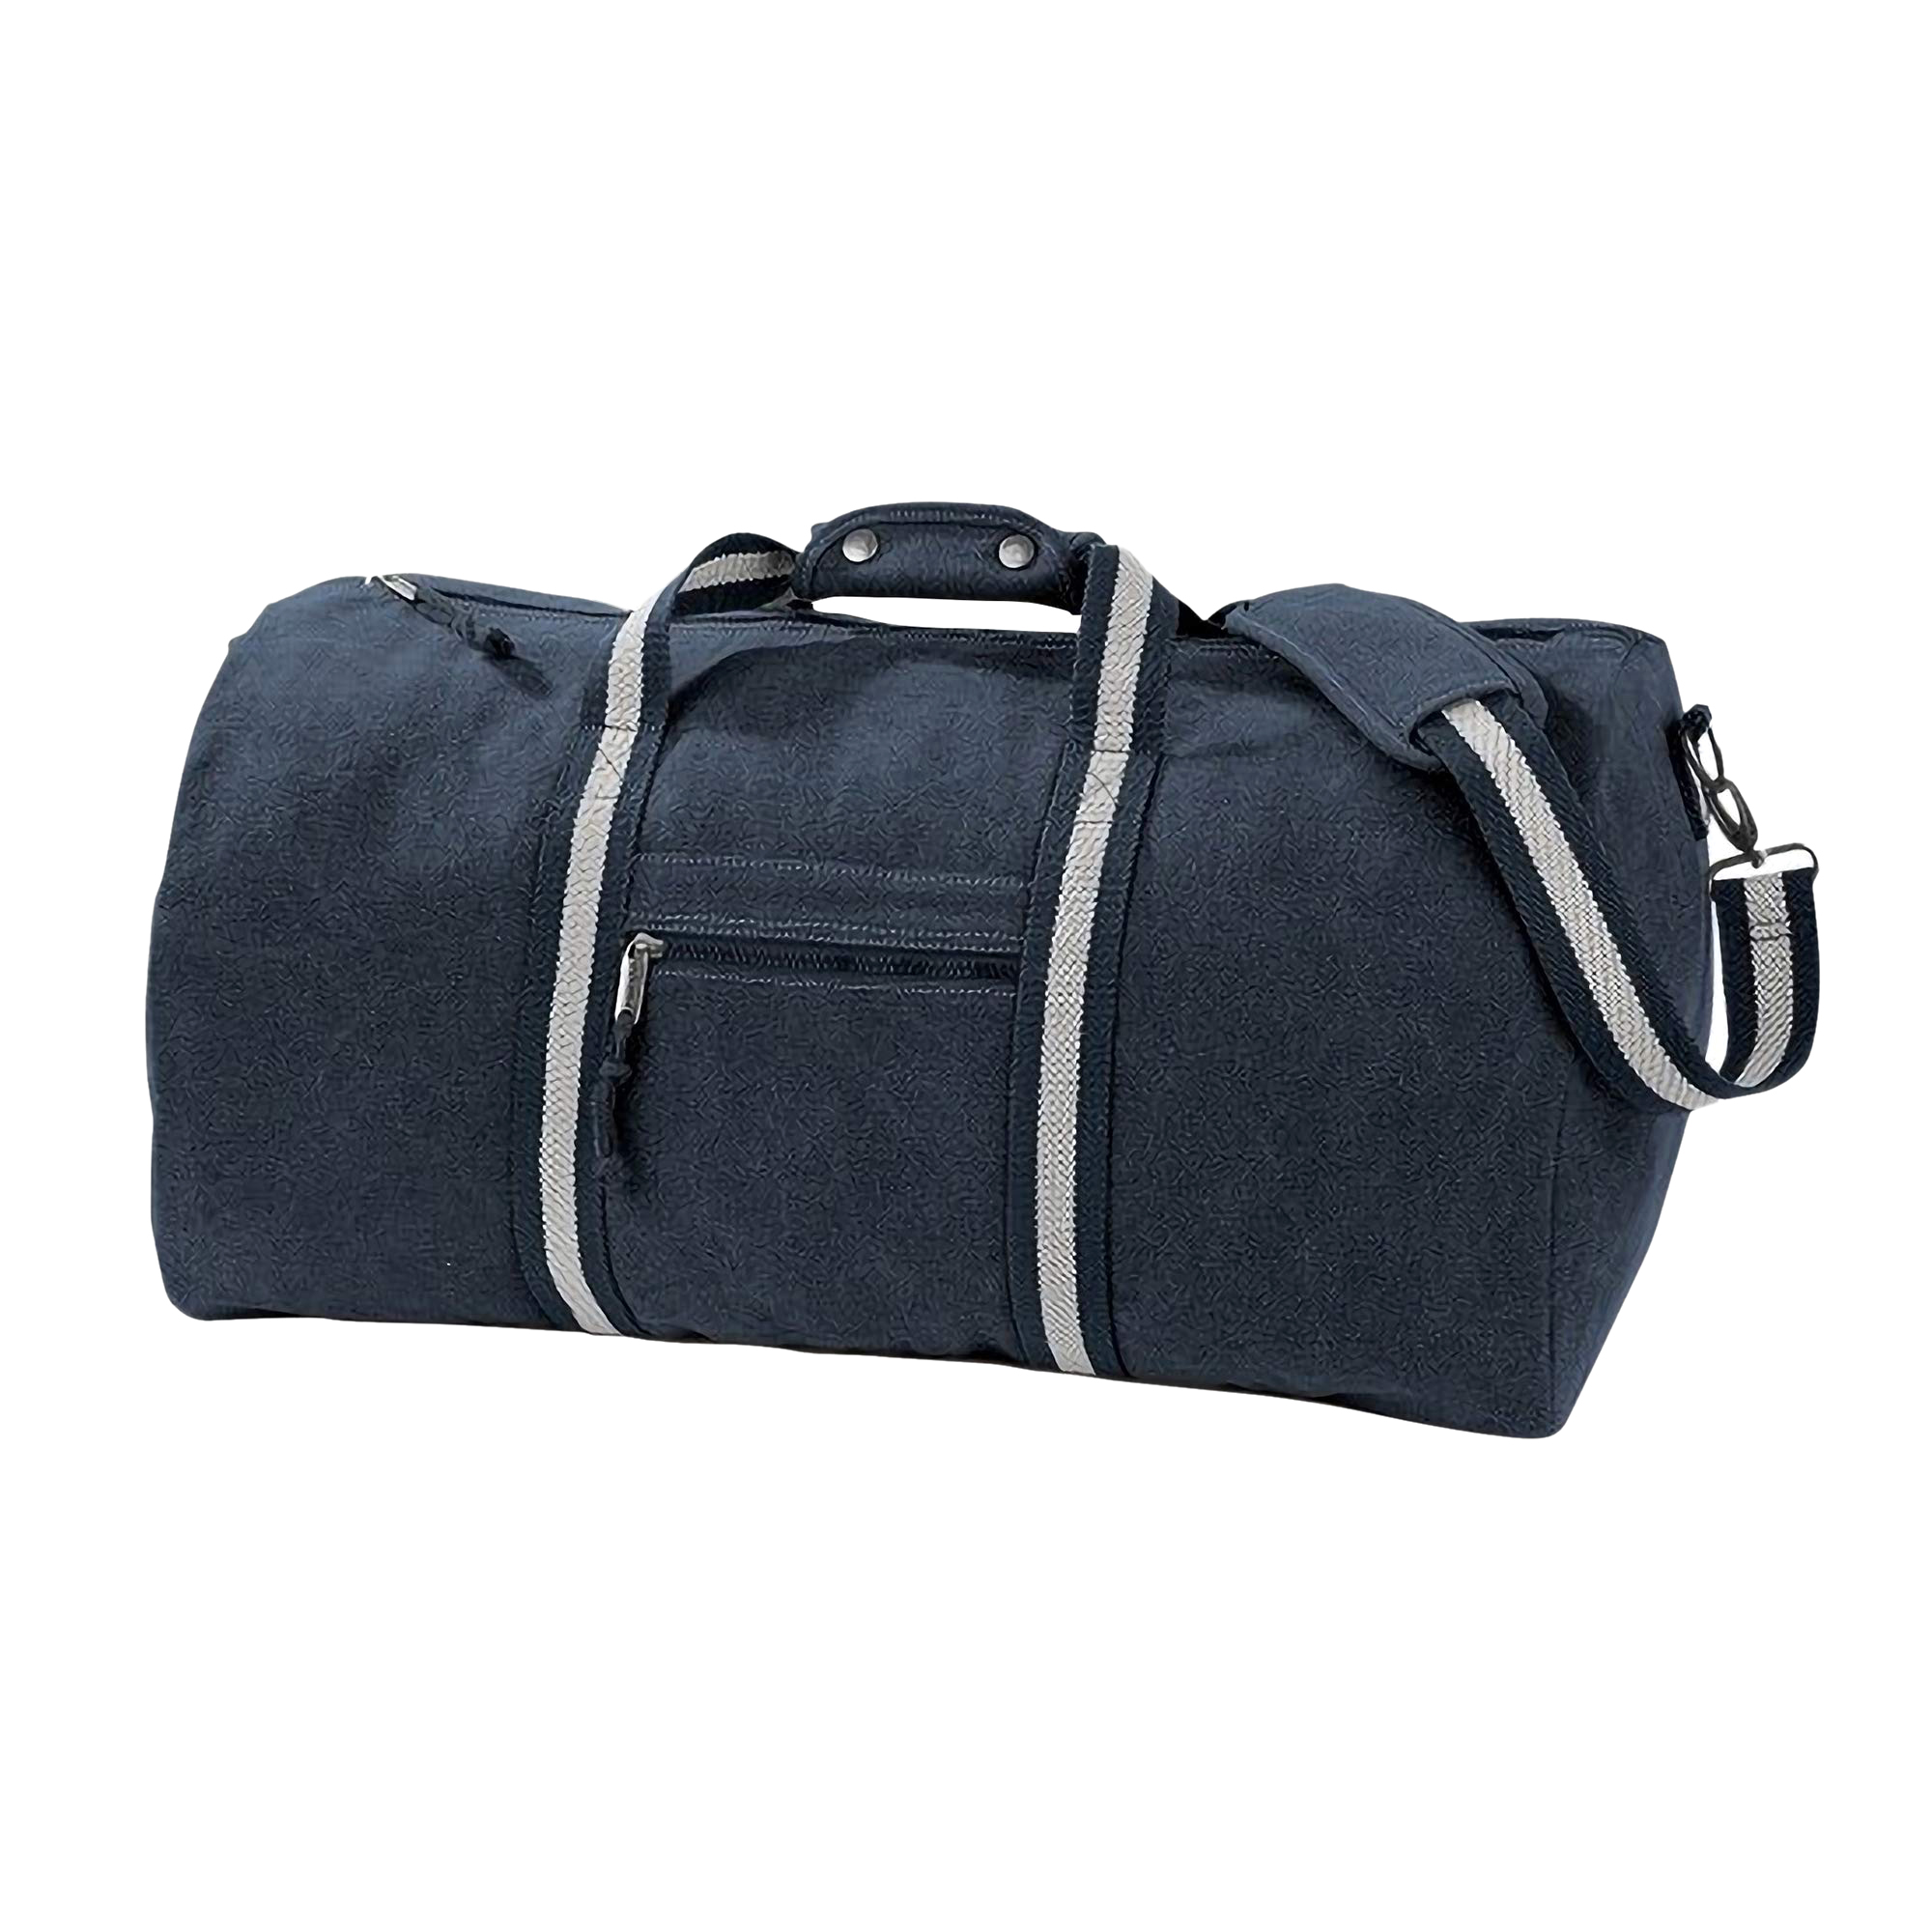 Quadra Vintage Canvas Holdall Duffle Bag - 45 Litres (Pack of 2) (One Size) (Vintage Light Grey)